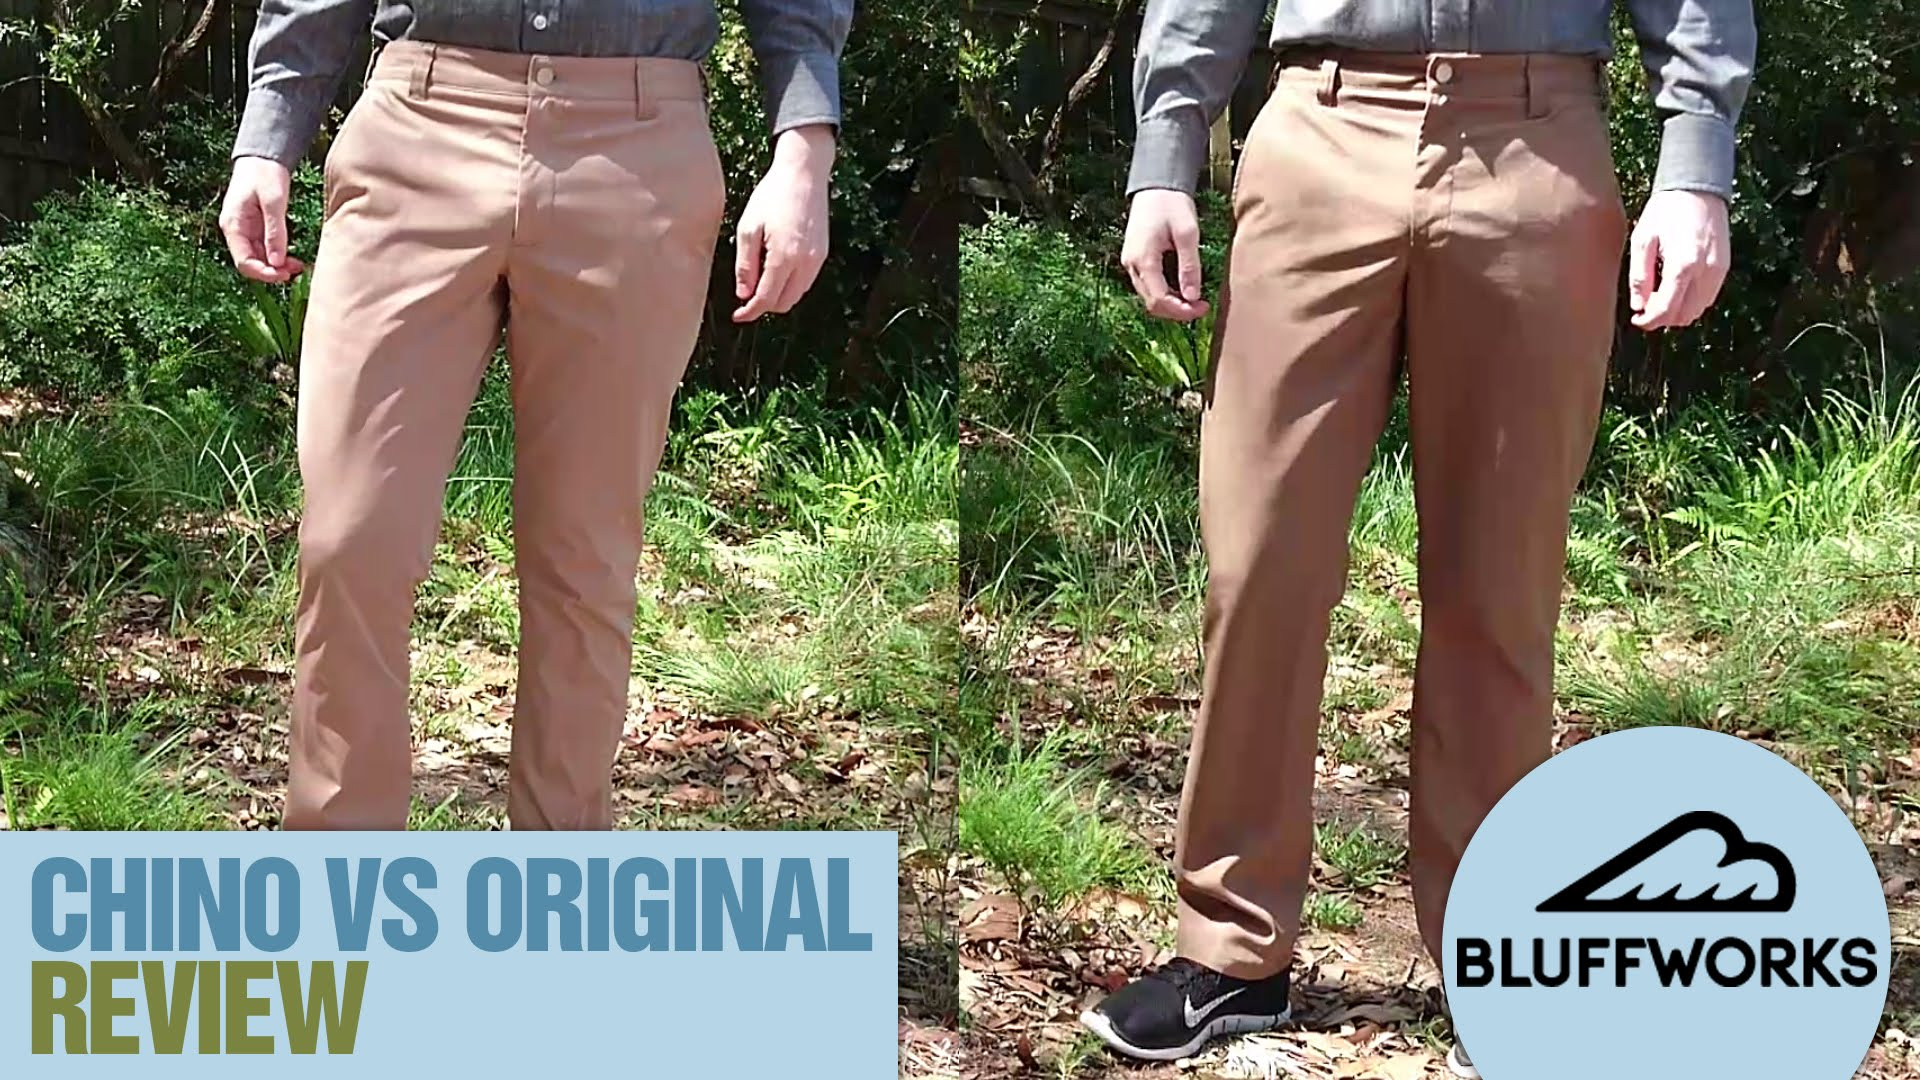 Bluffworks-Chinos-vs-Originals-Review